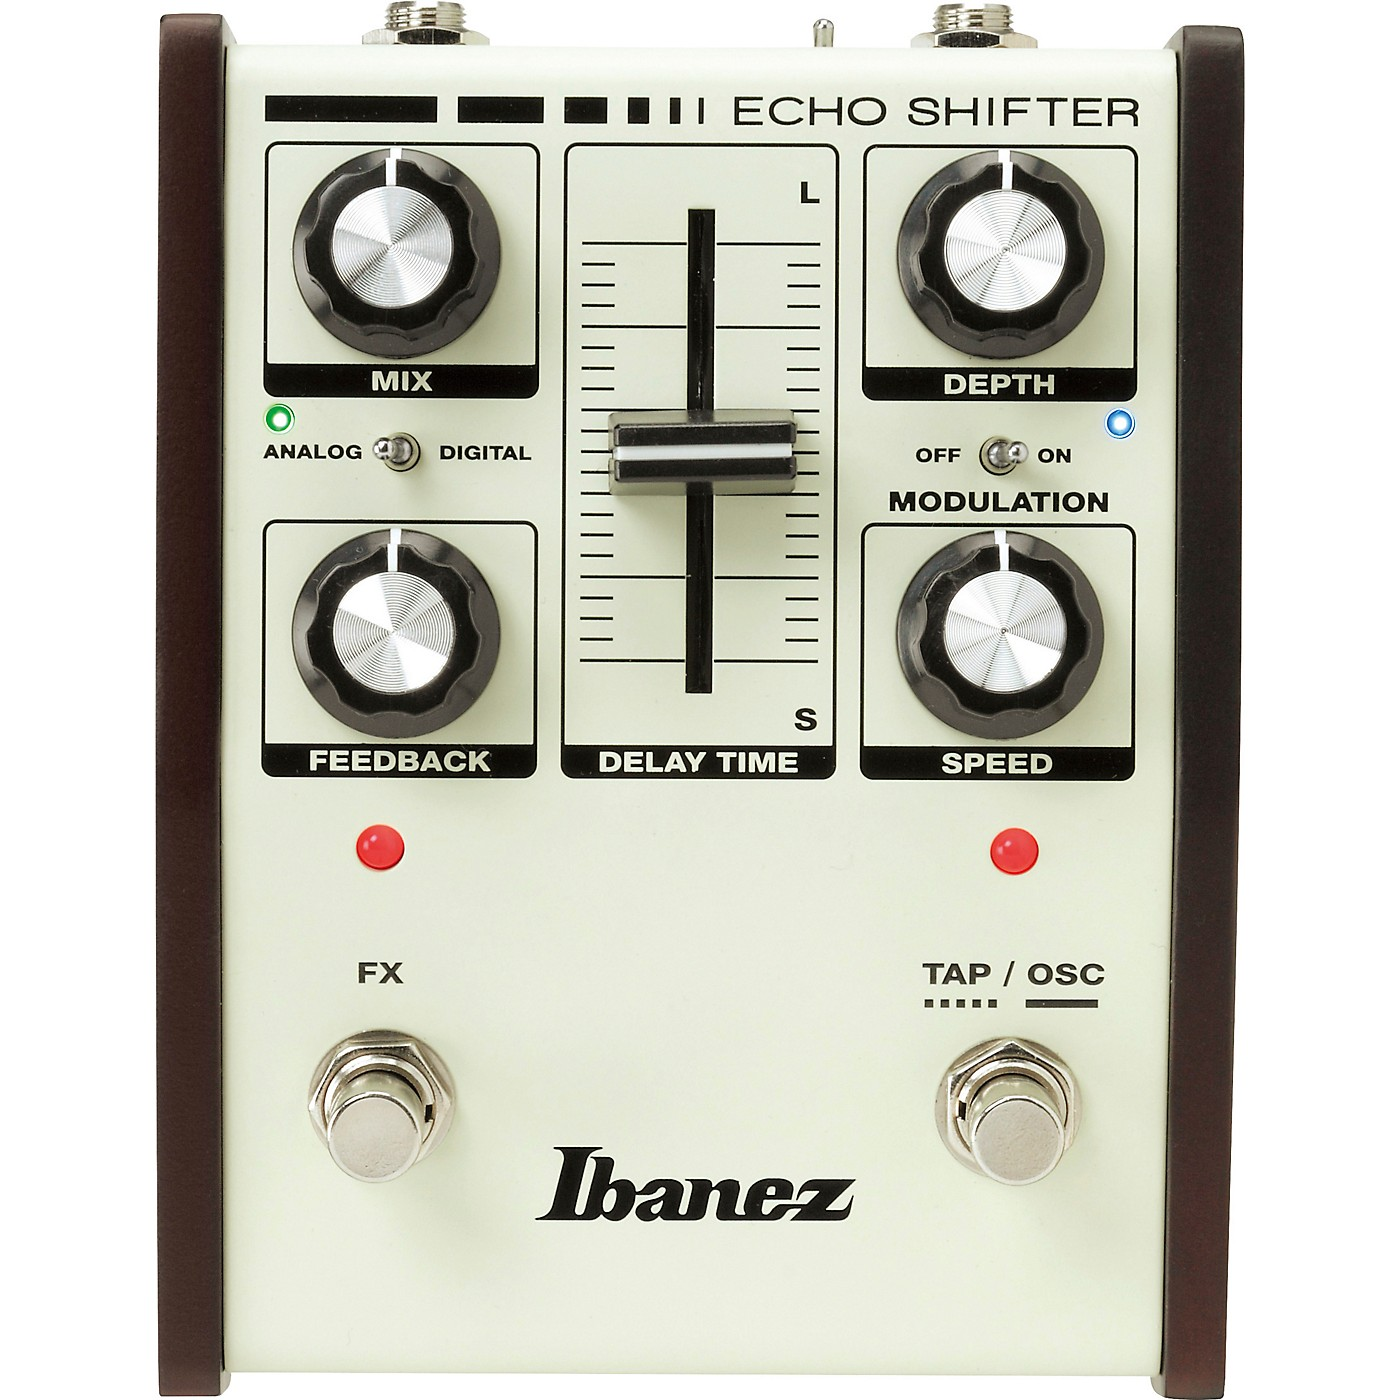 Ibanez Echo Shifter Hybrid Delay with Modulation Guitar Effects Pedal thumbnail